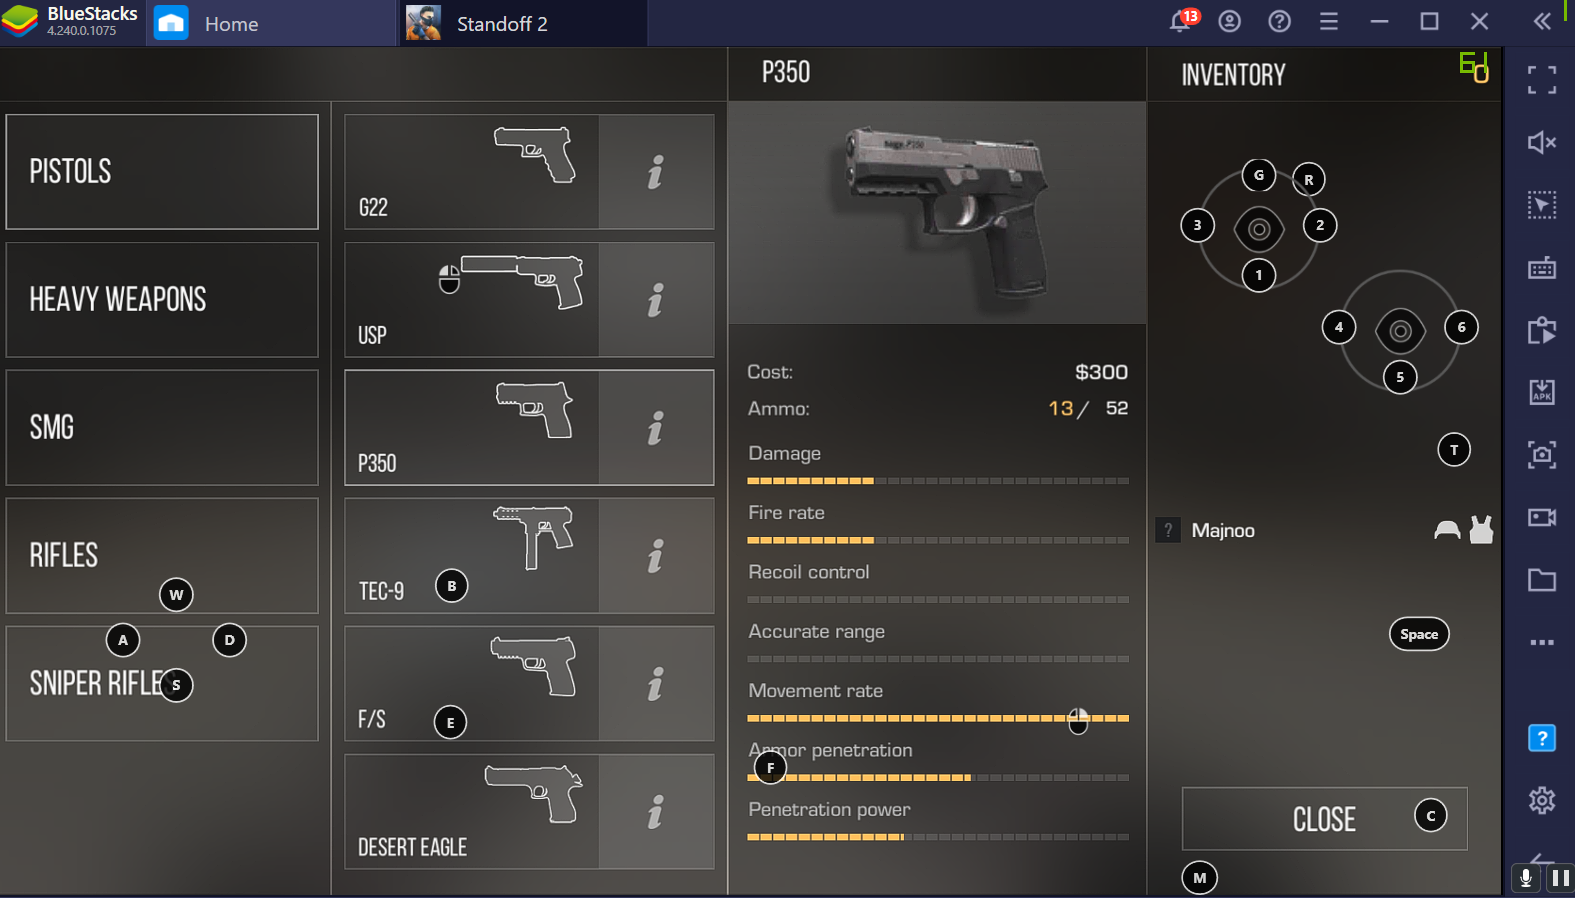 Standoff 2 with BlueStacks: A Weapon Guide for PC